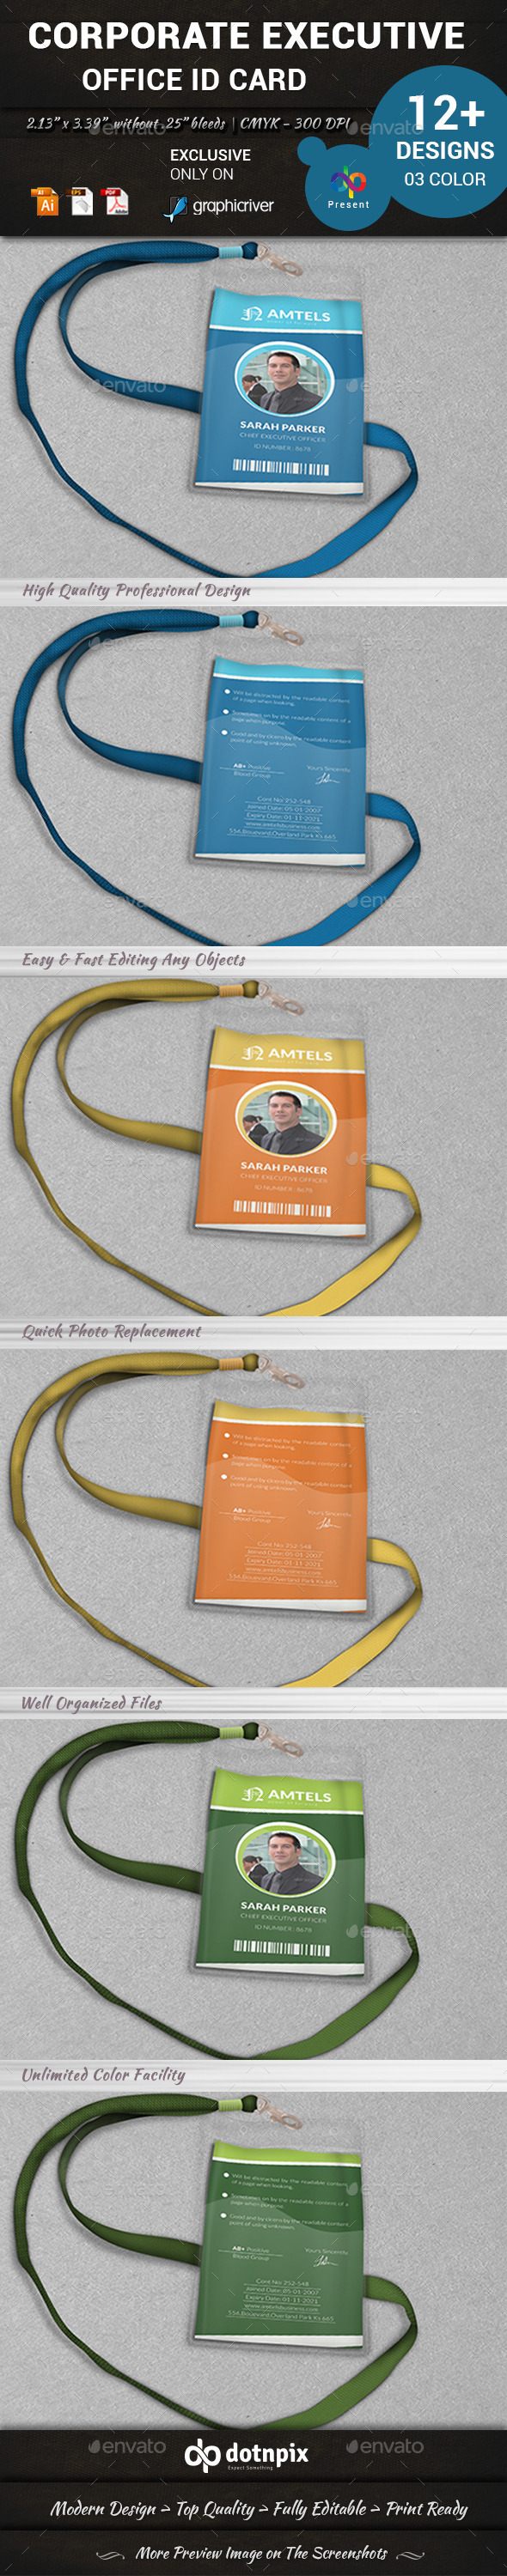 GraphicRiver Corporate Executive Office ID card 10991084